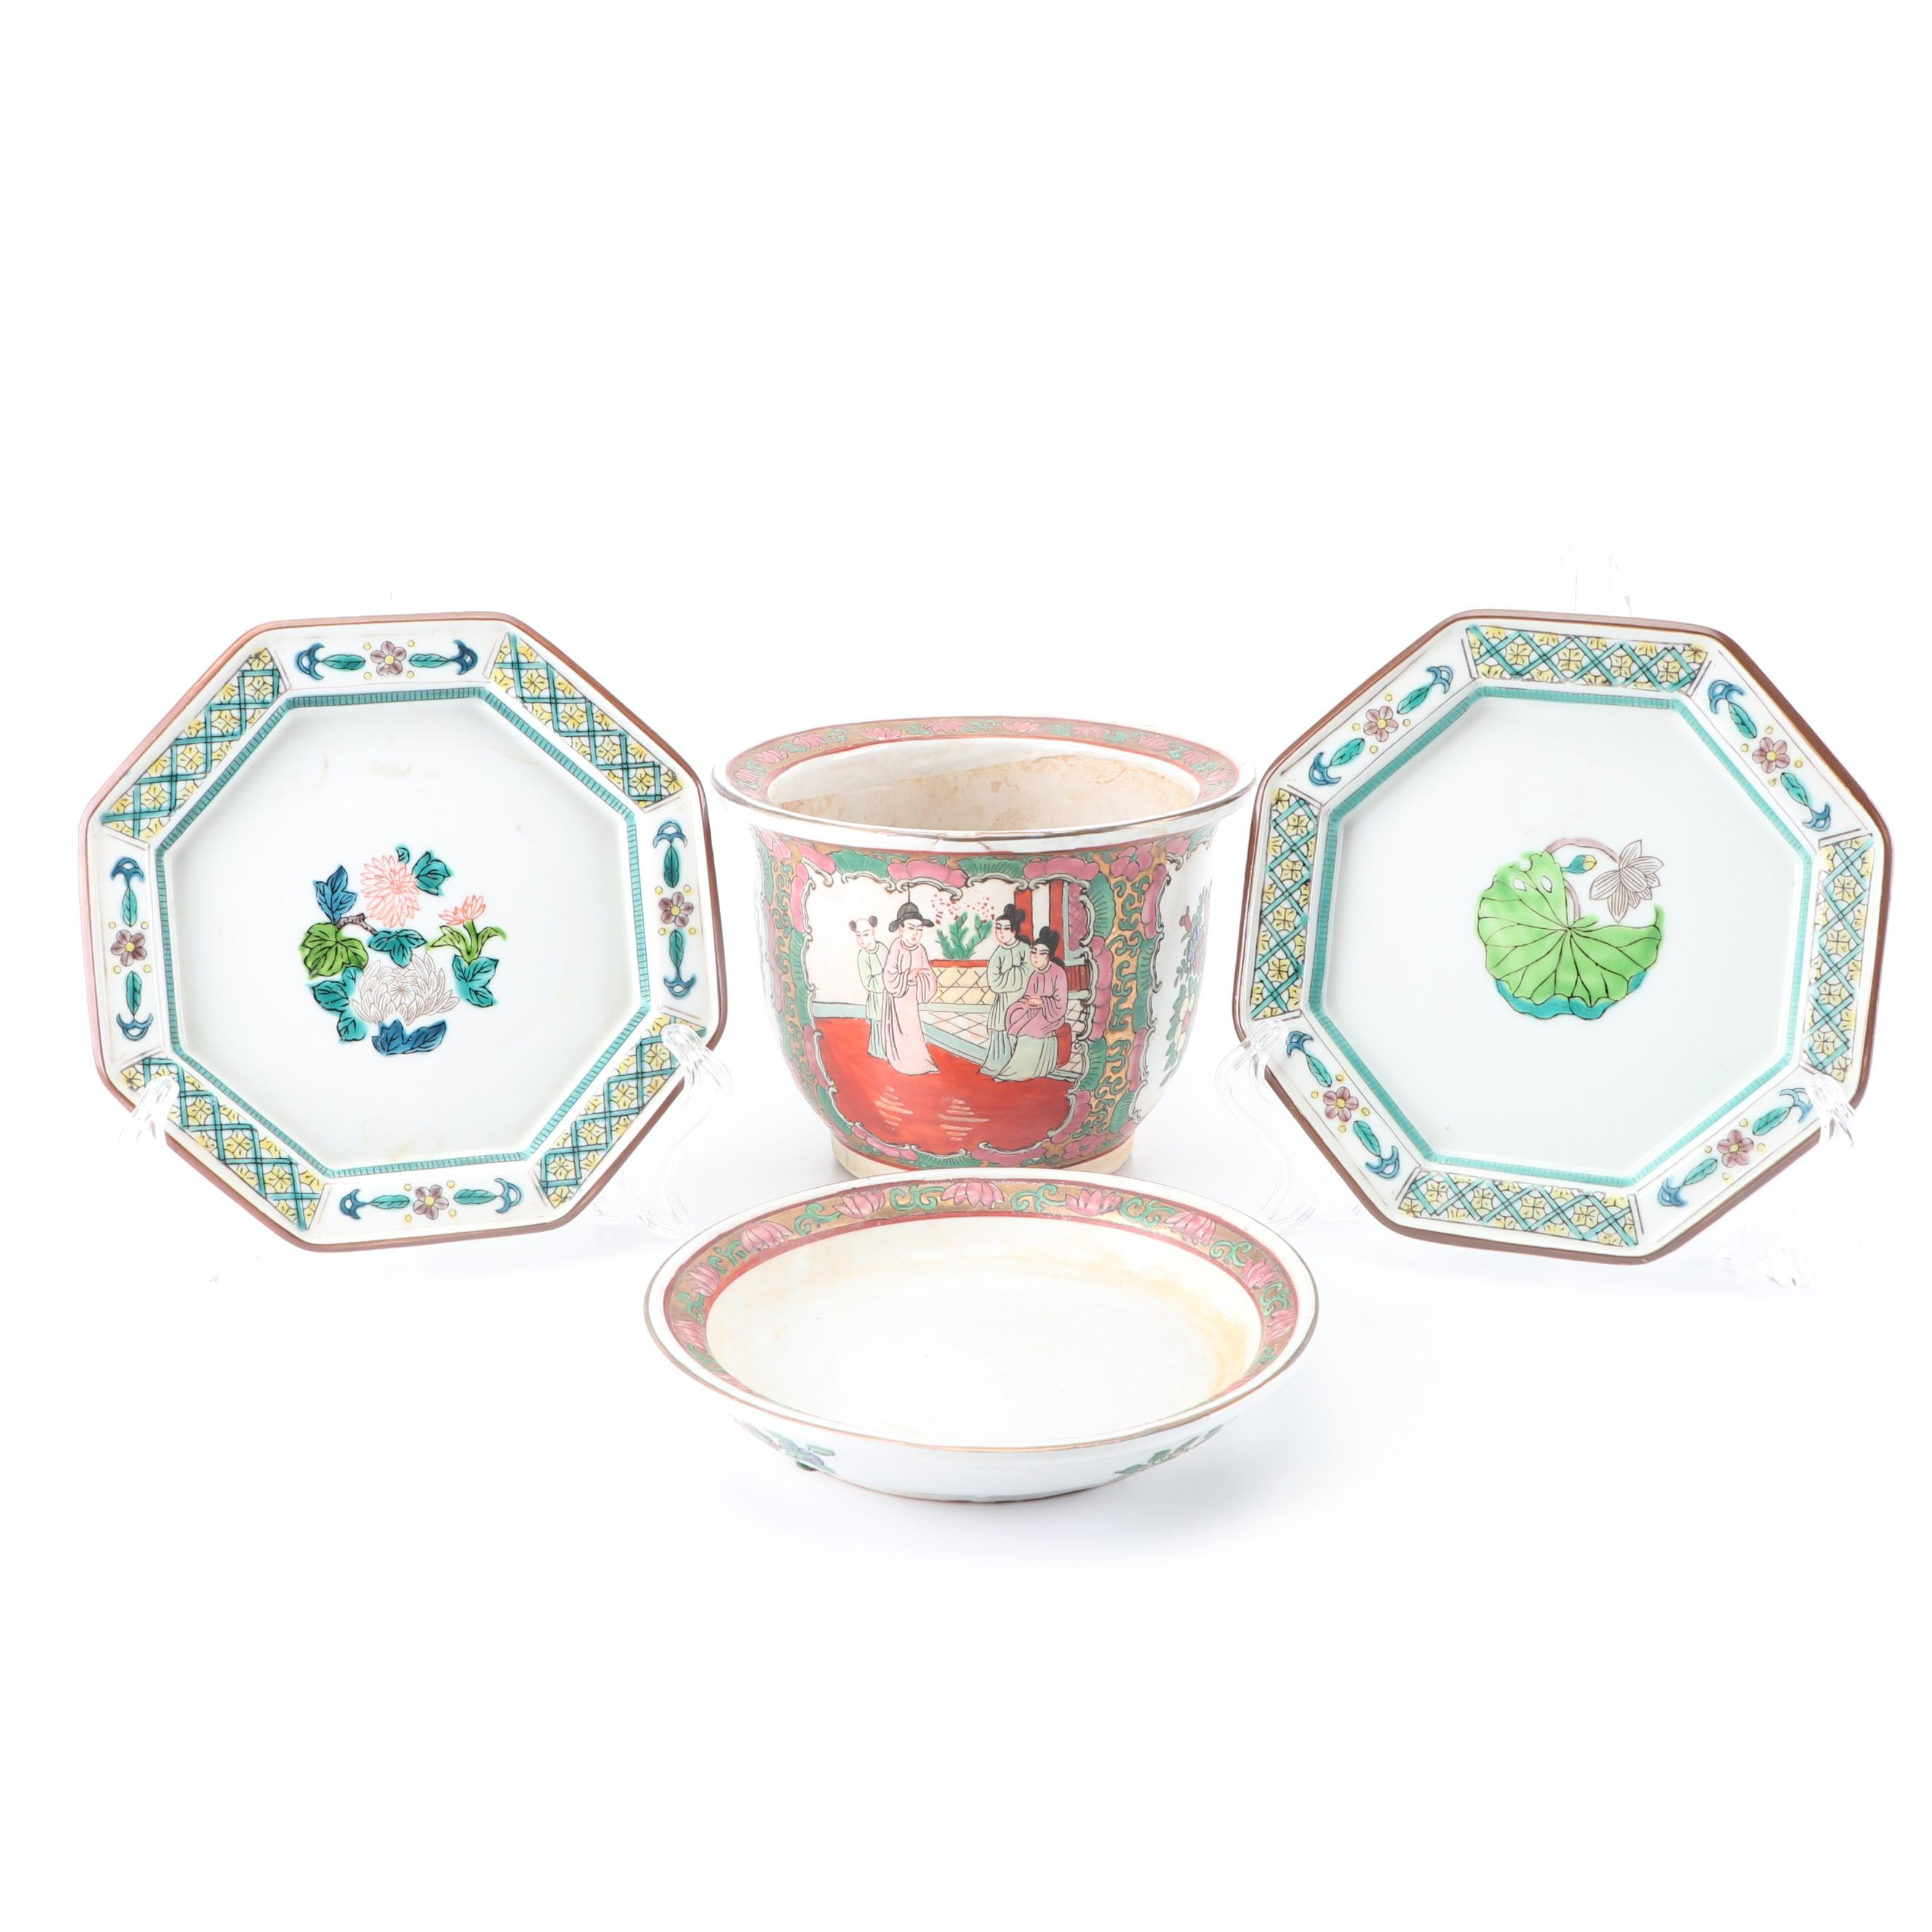 East Asian Hand-Painted Porcelain Planter and Dishes